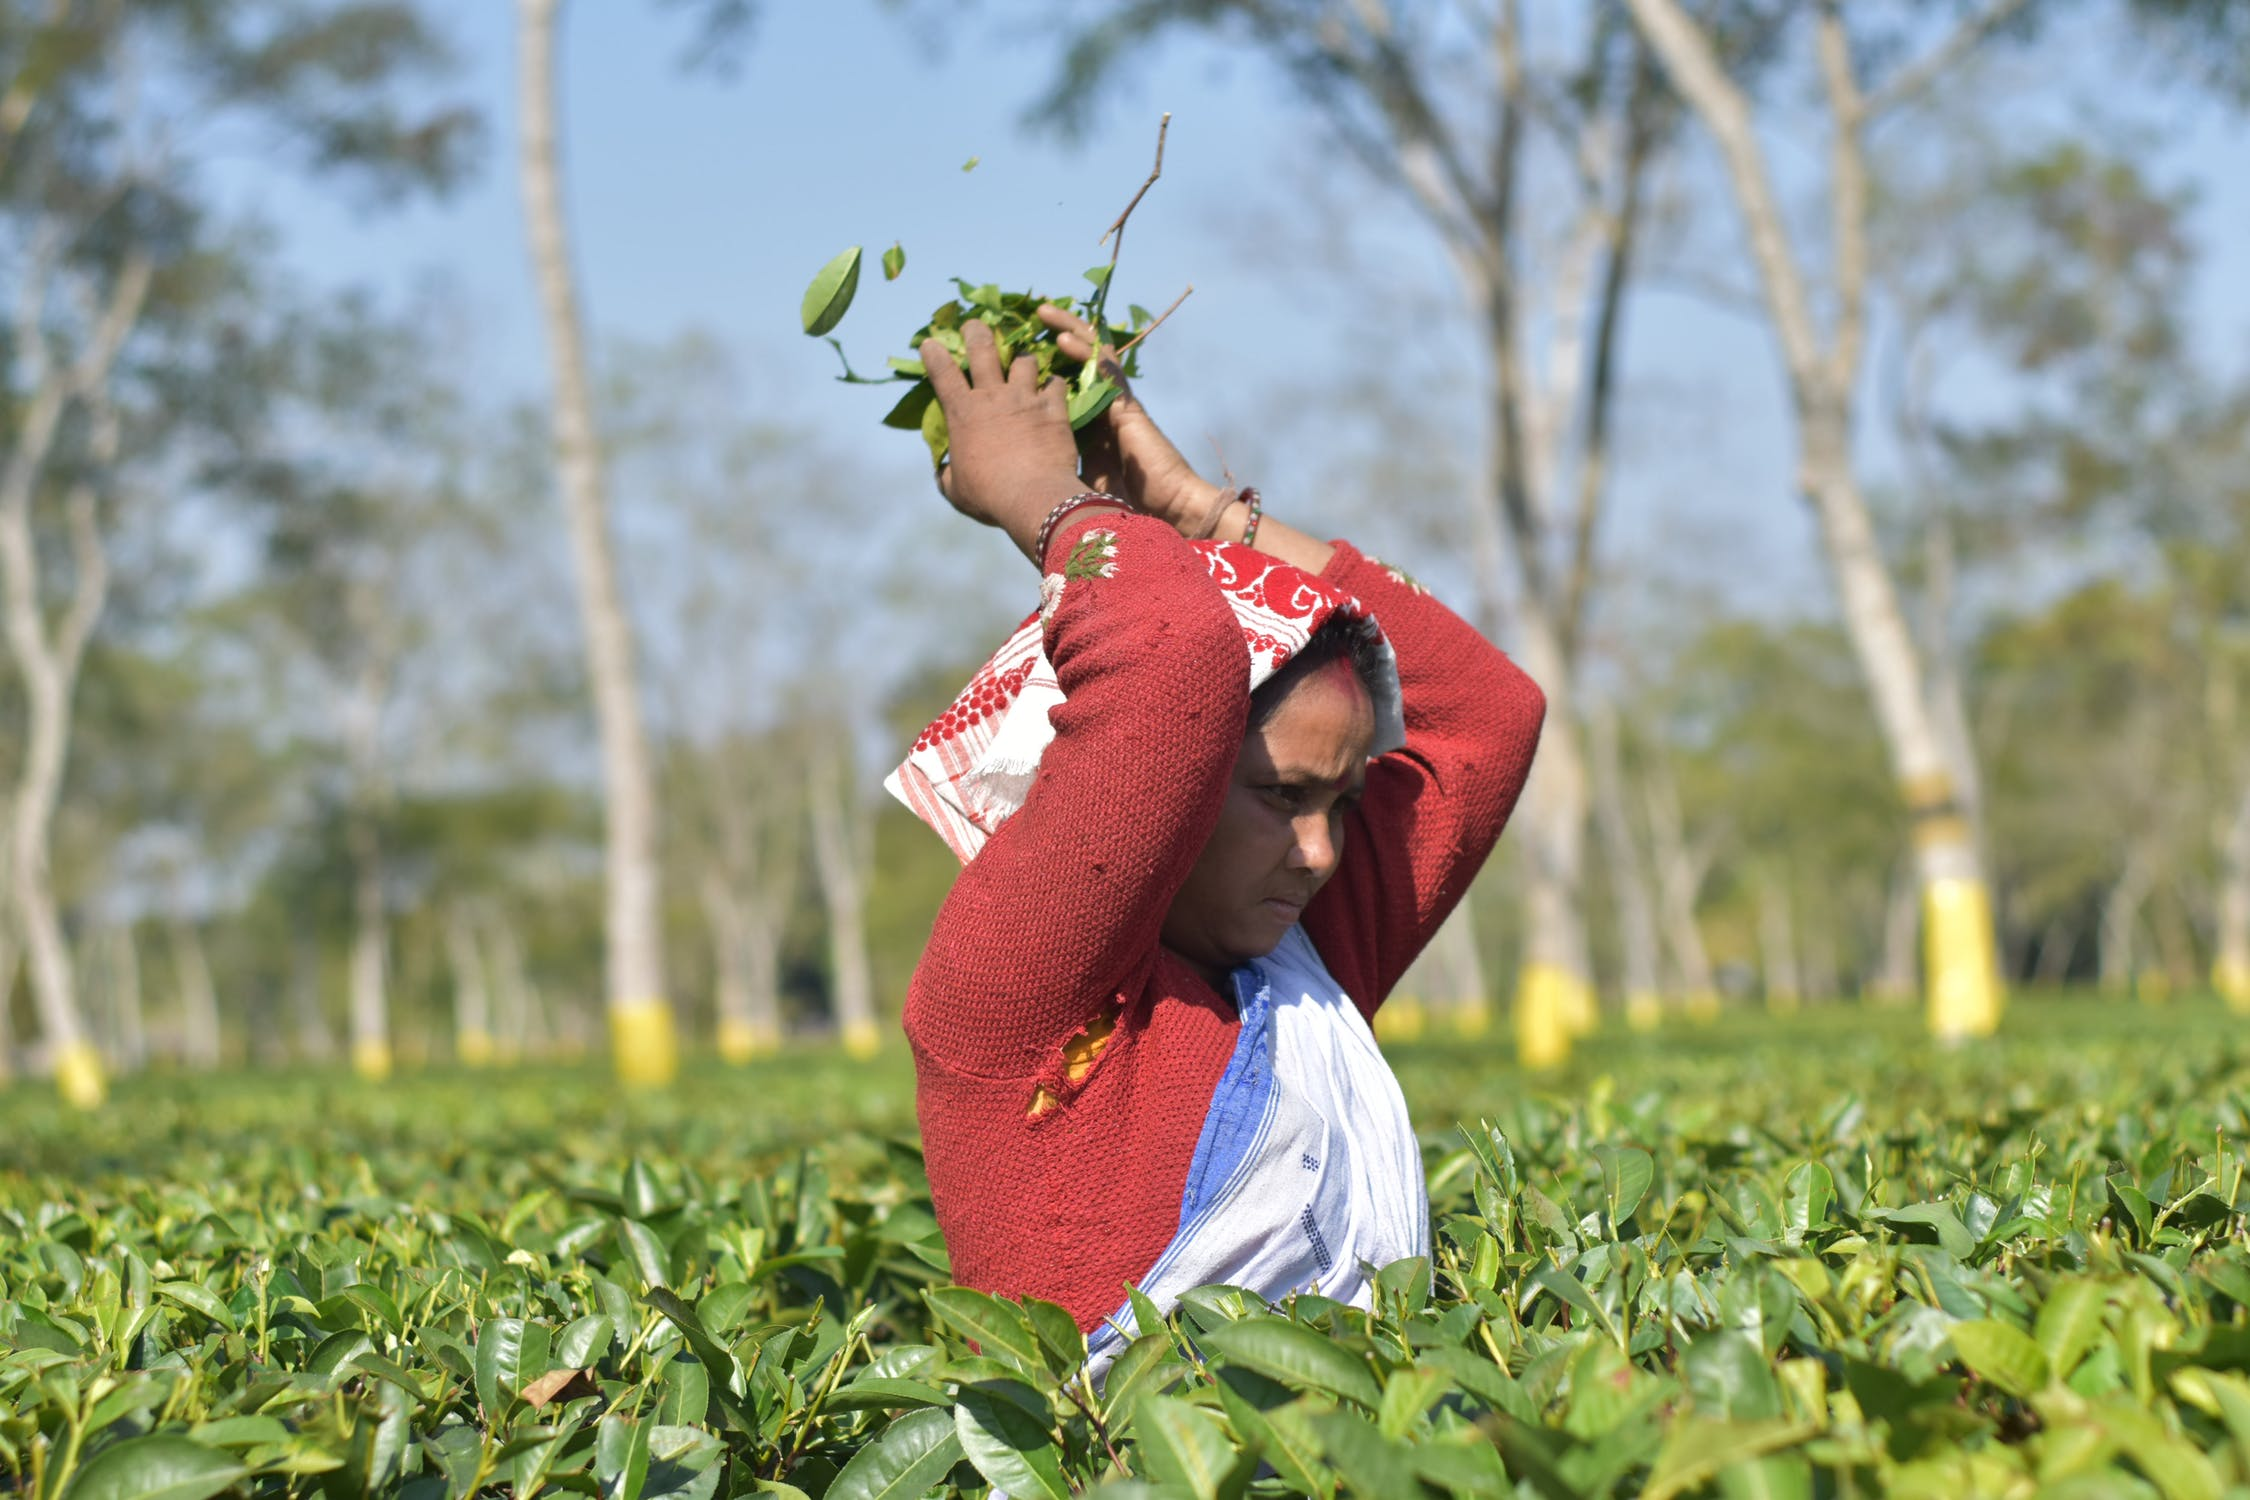 Nearly 2 million people in Assam, a state in northeast India known internationally in part for its tea plantations, have been left off a register of citizens meant to exclude illegal immigrants. Photo by  Dwijen Mahanta .